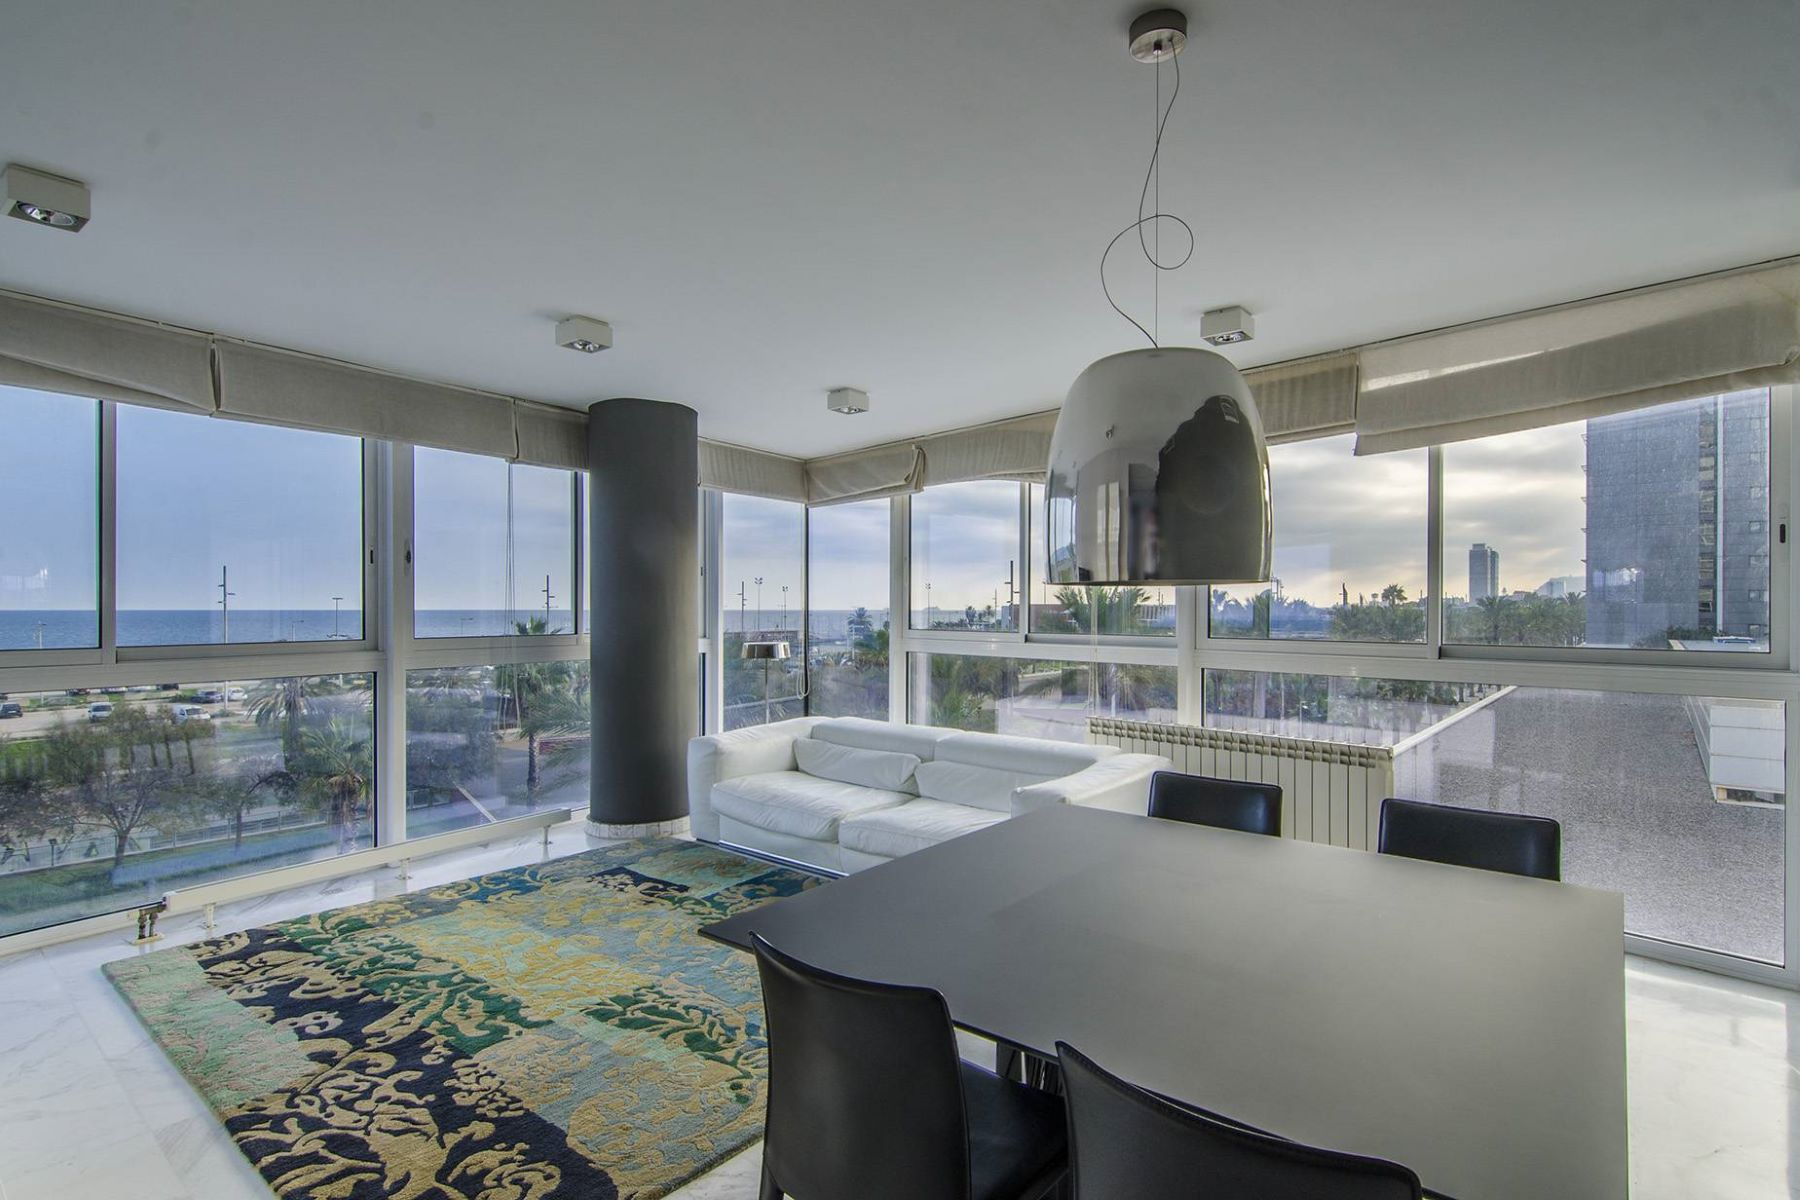 Apartment for Sale at Apartment on the Seafront with Sea Views in Barcelona Barcelona City, Barcelona, 08019 Spain